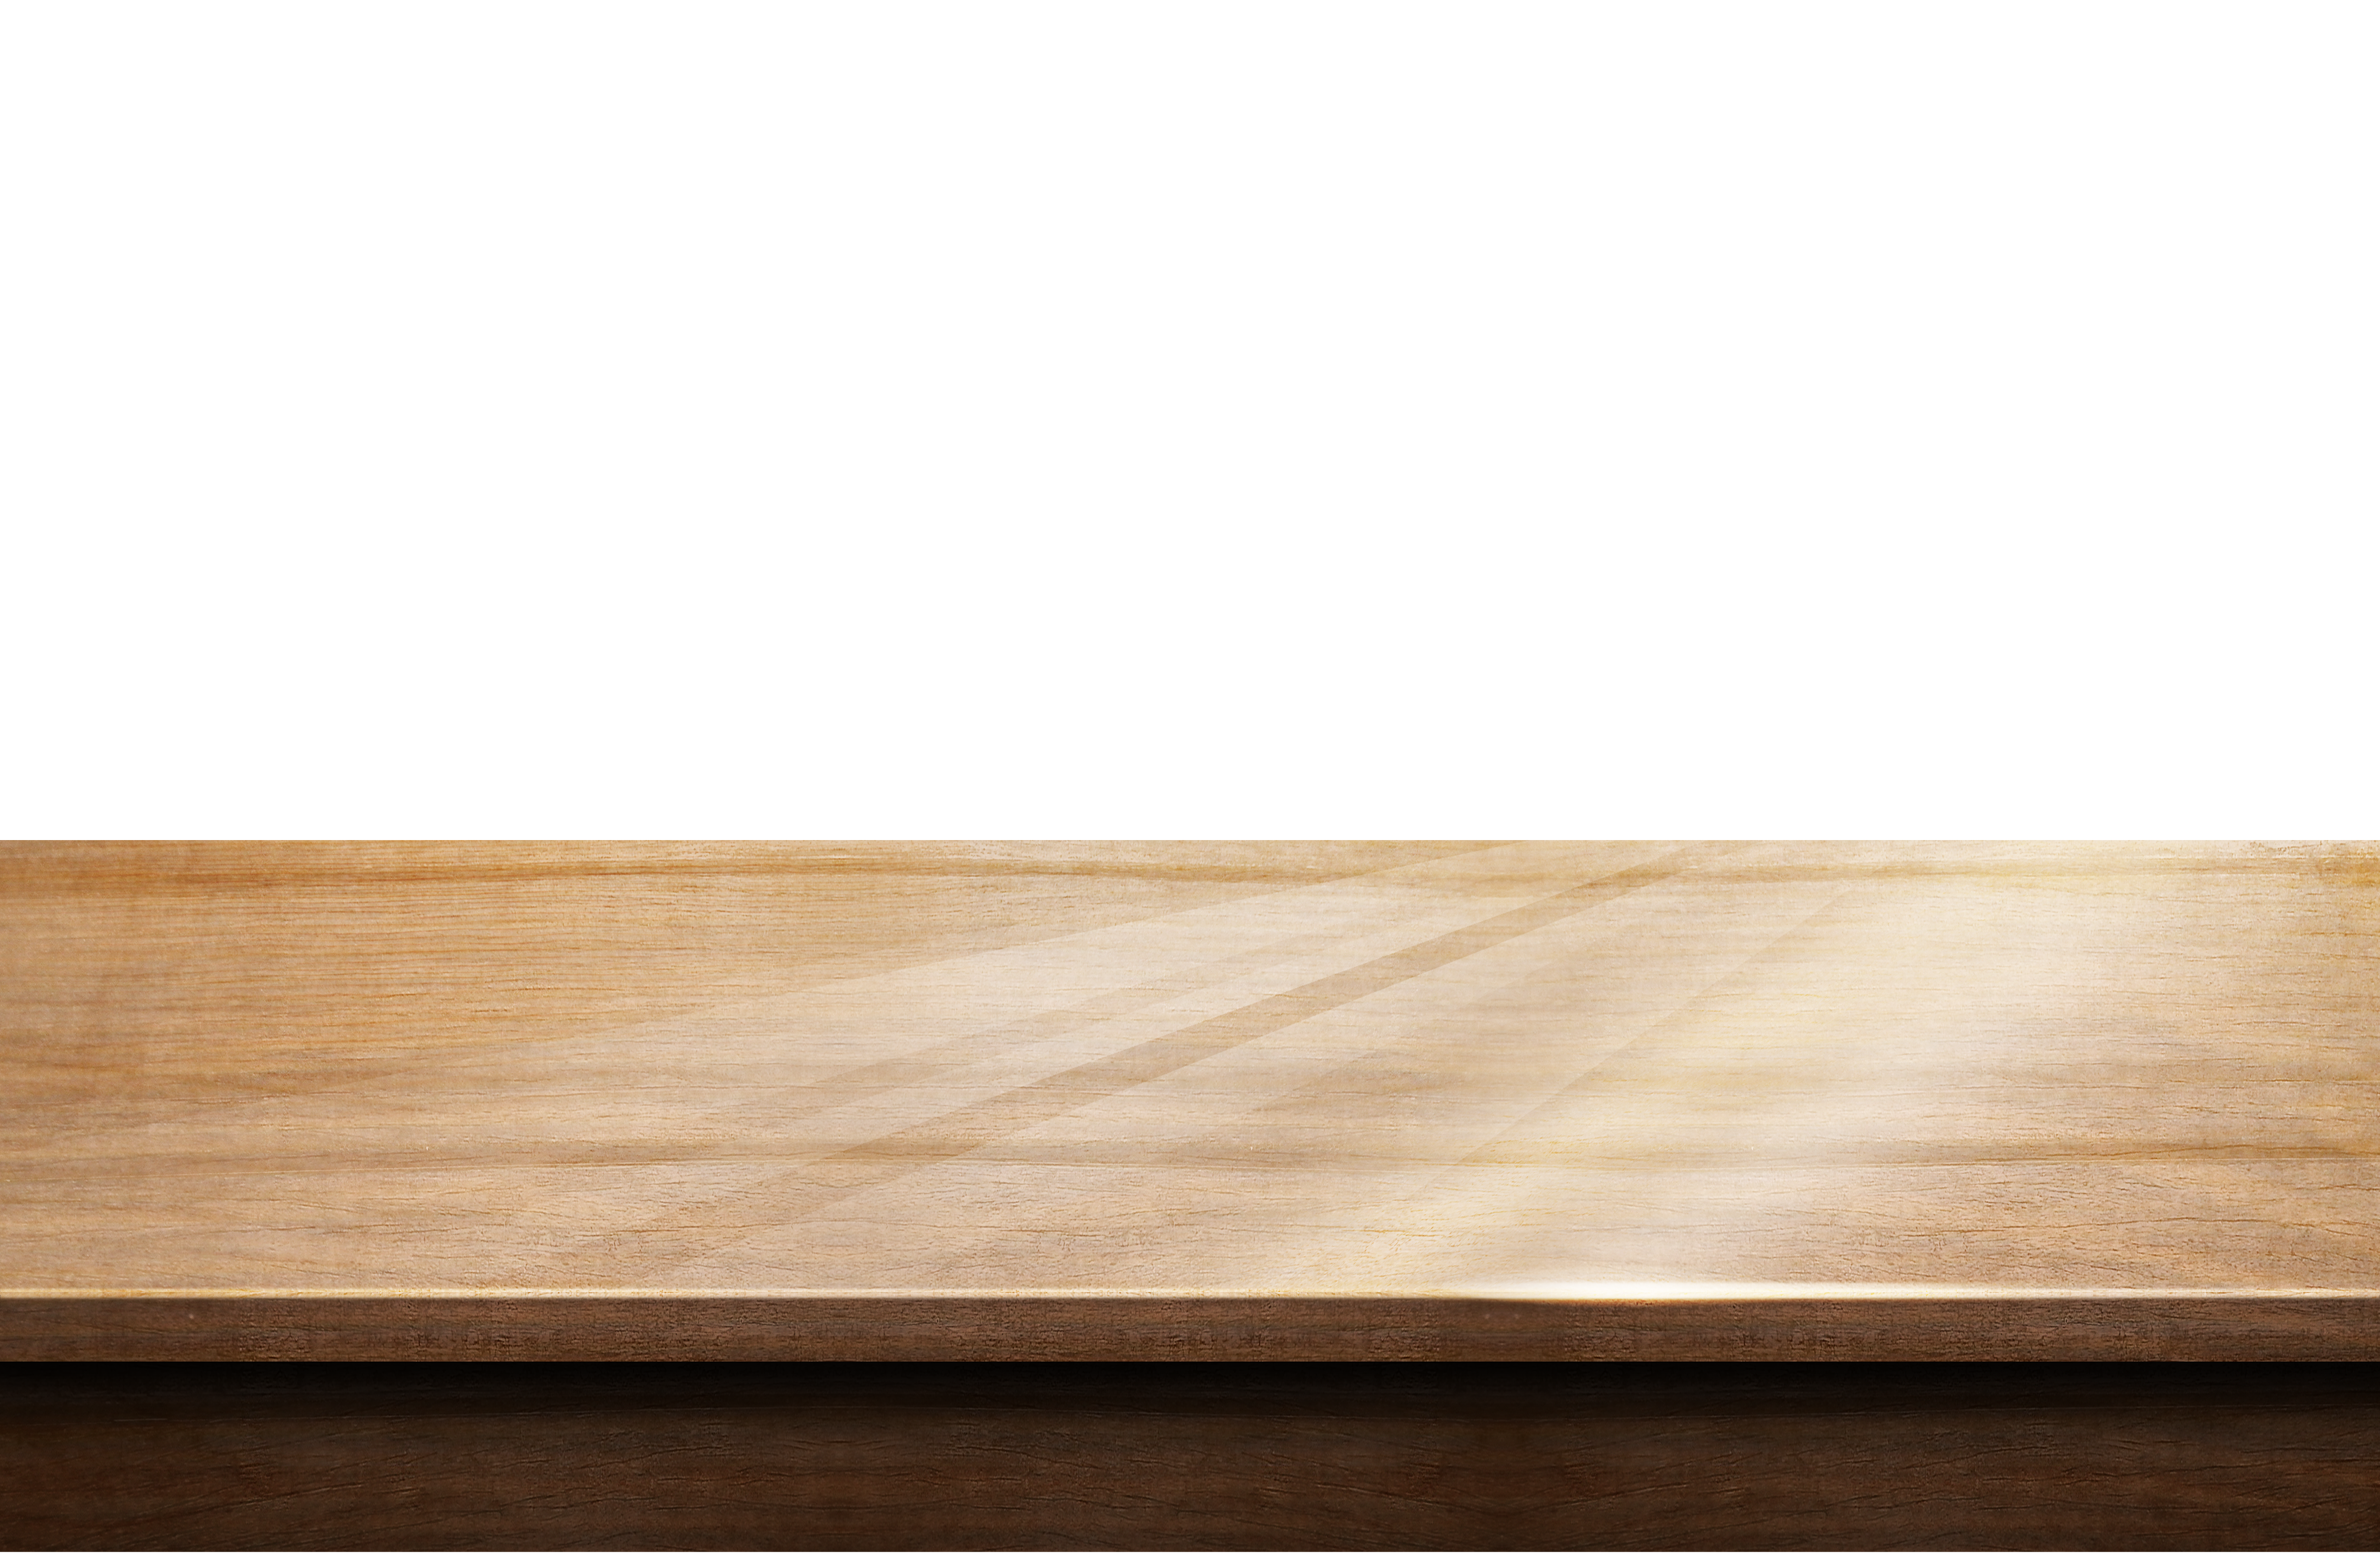 Wooden floor png. Material plywood hardwood background